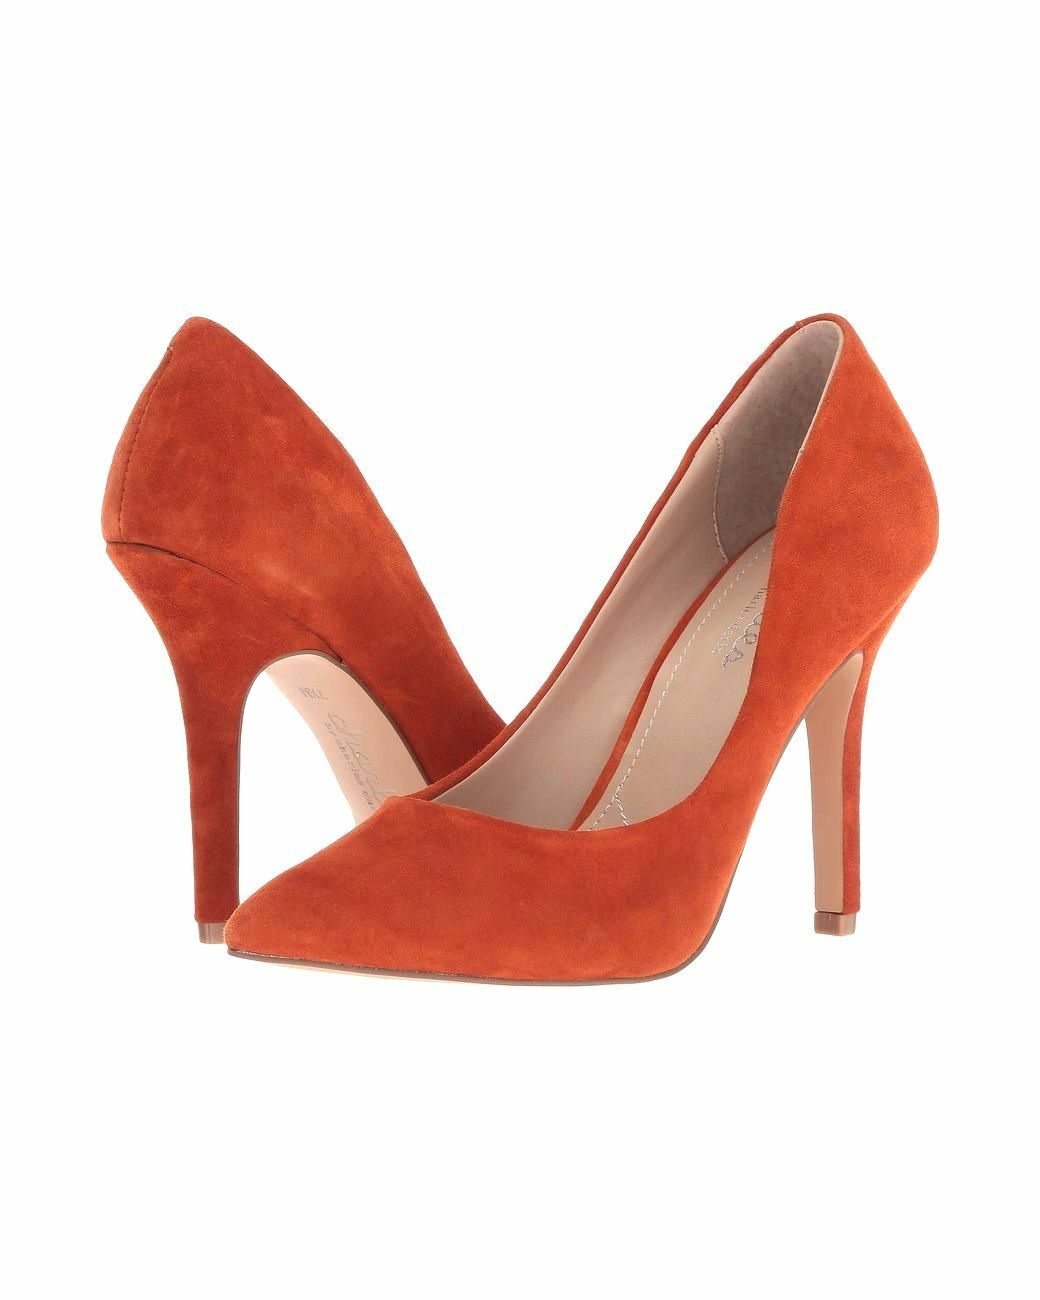 Charles David Women's orange High Heels